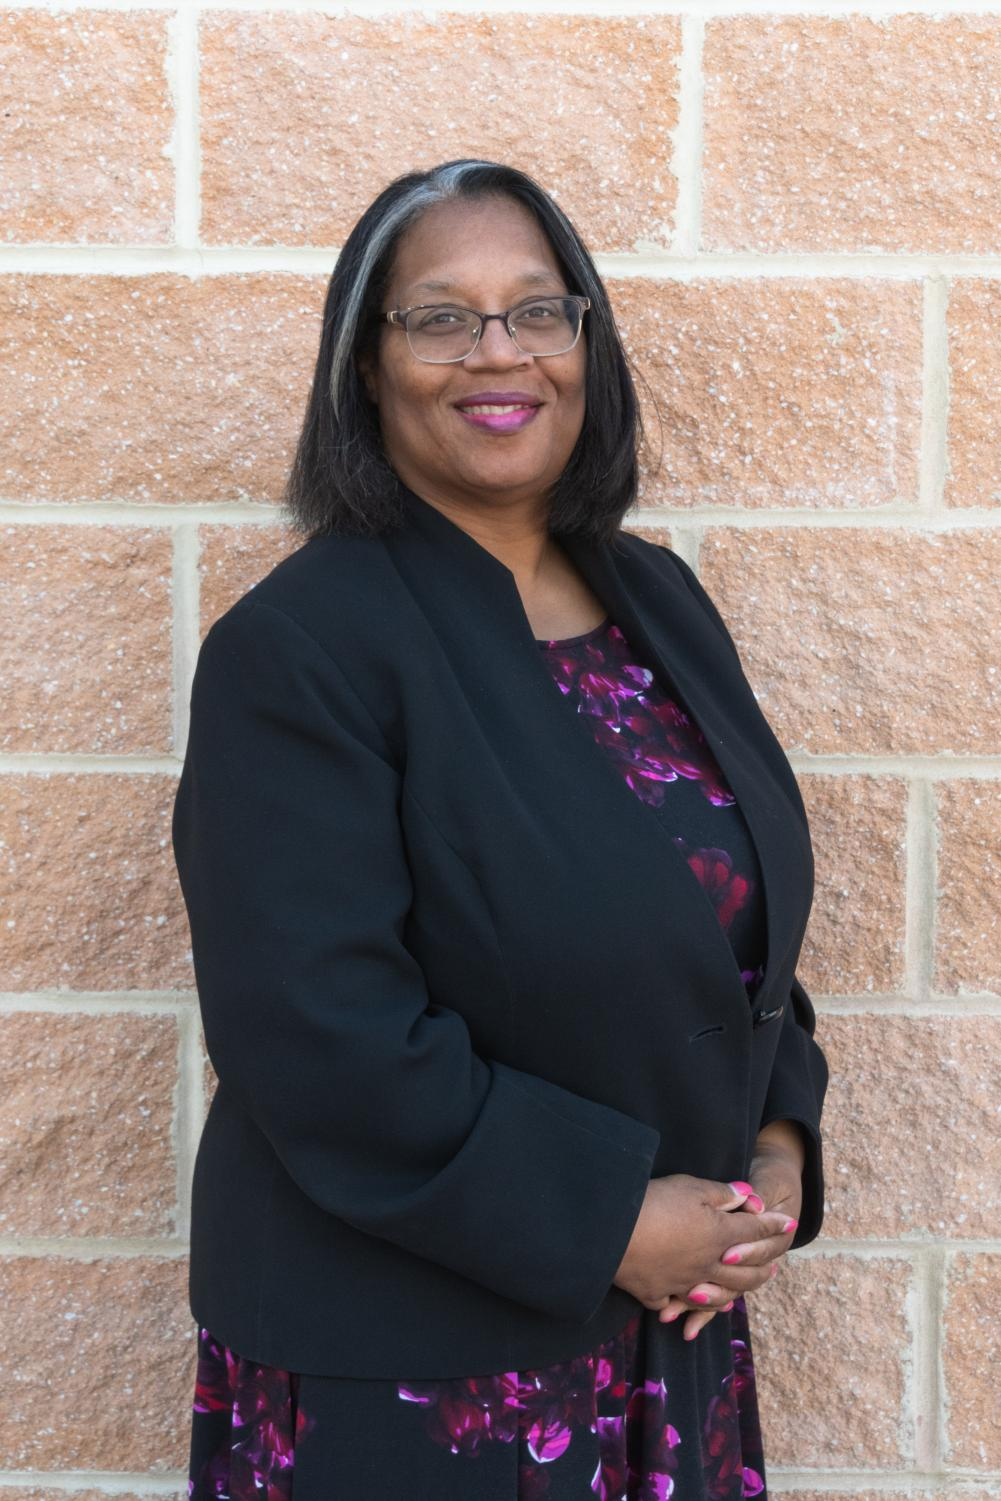 Felicia Patterson is AACC's VP of Learner Support Services